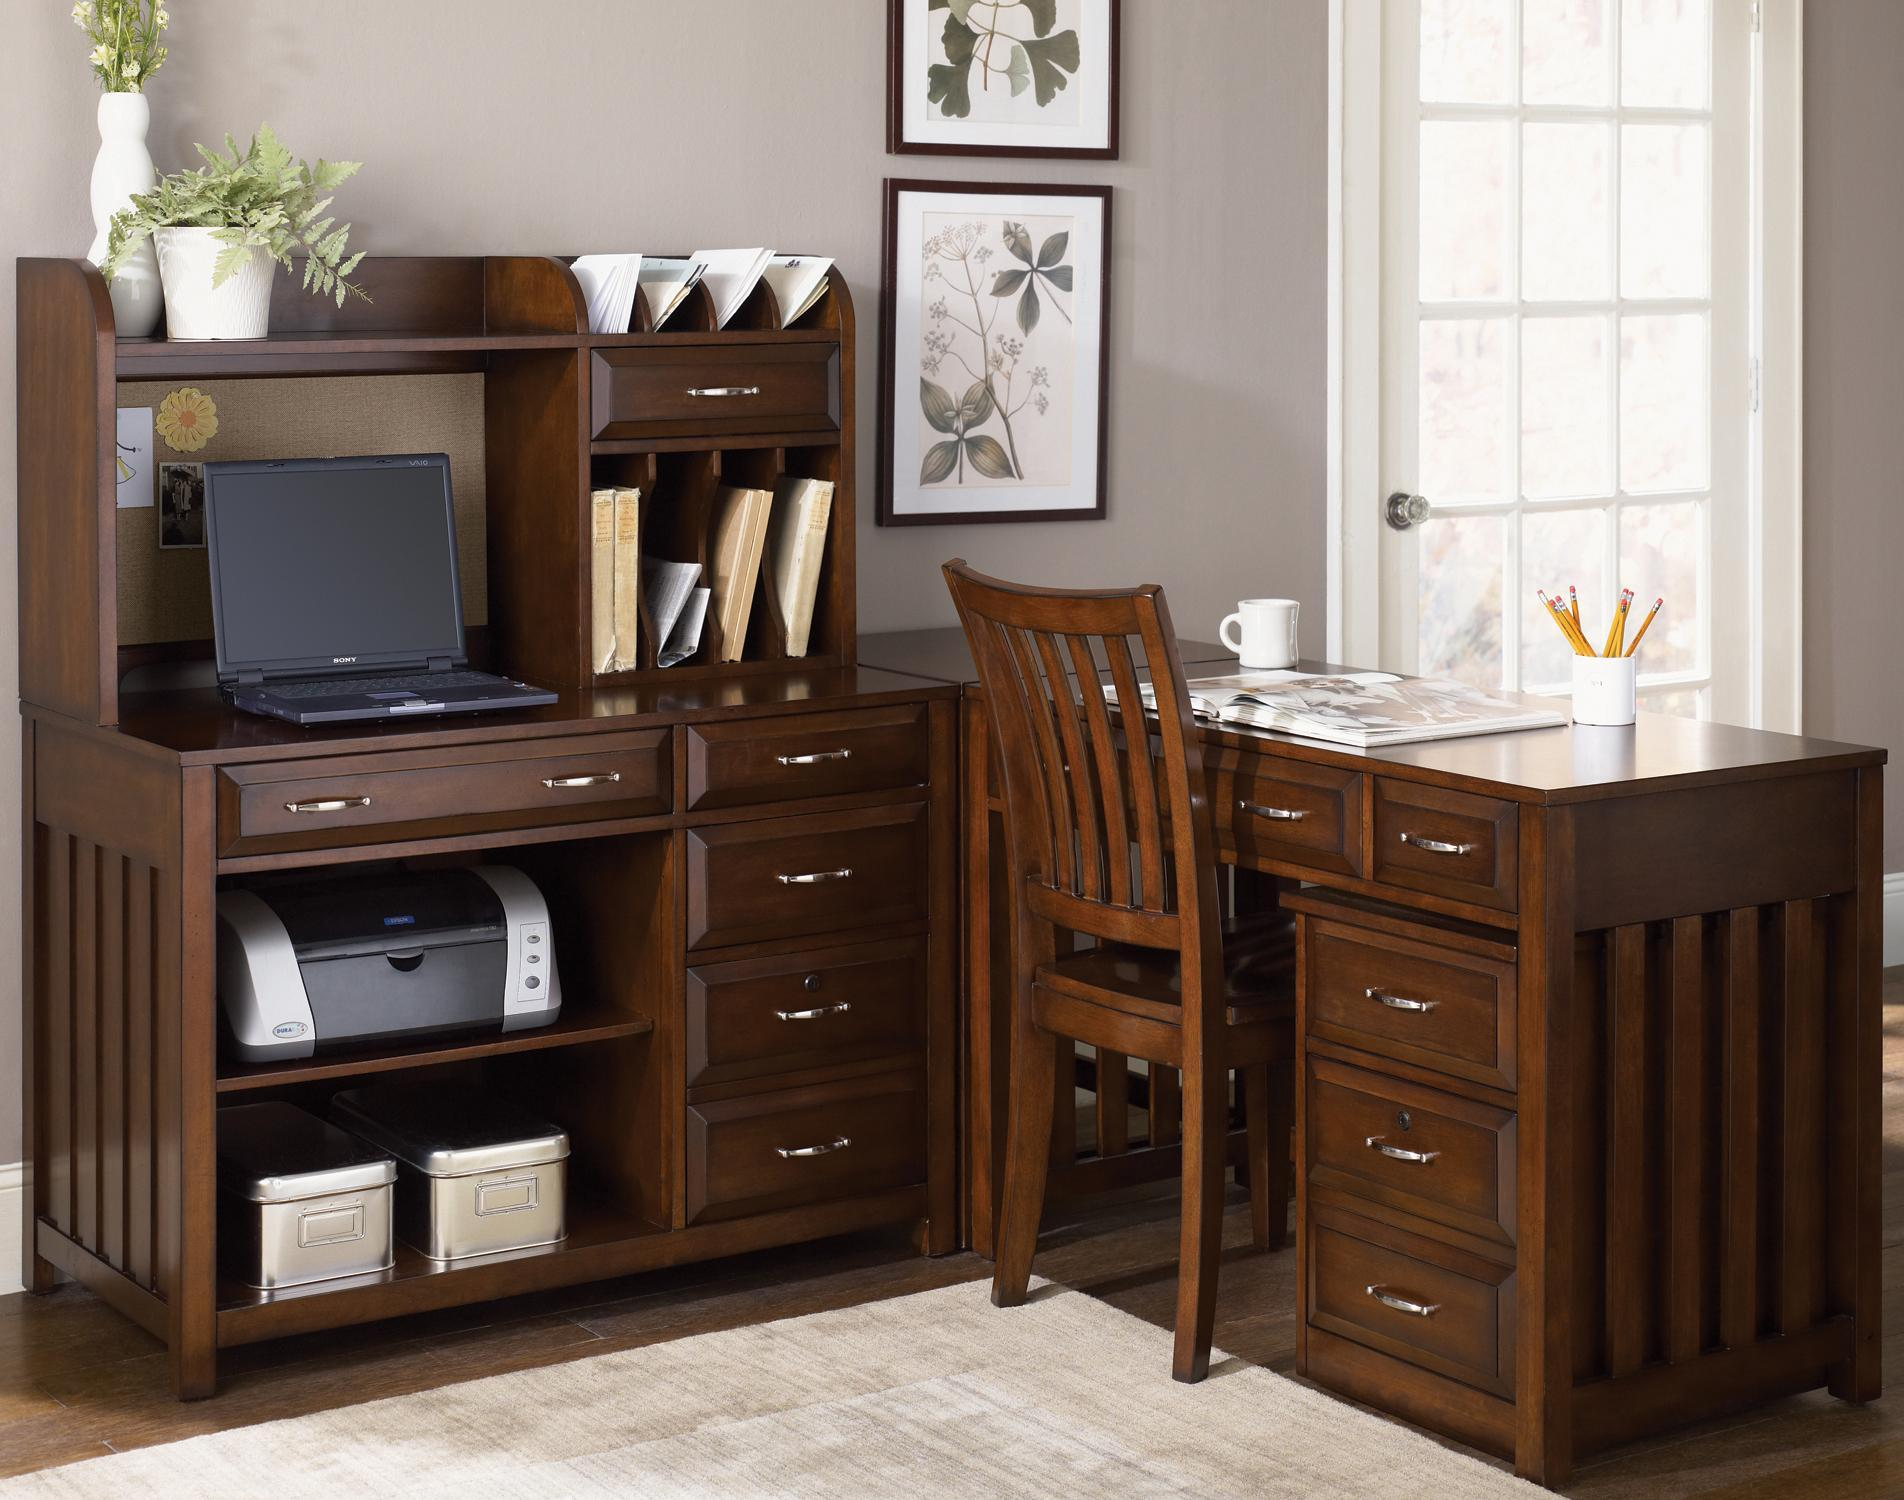 Liberty Furniture Hampton Bay  L-Shaped Desk with File Cabinet - Item Number: 718-HO111+111C+121+140+146